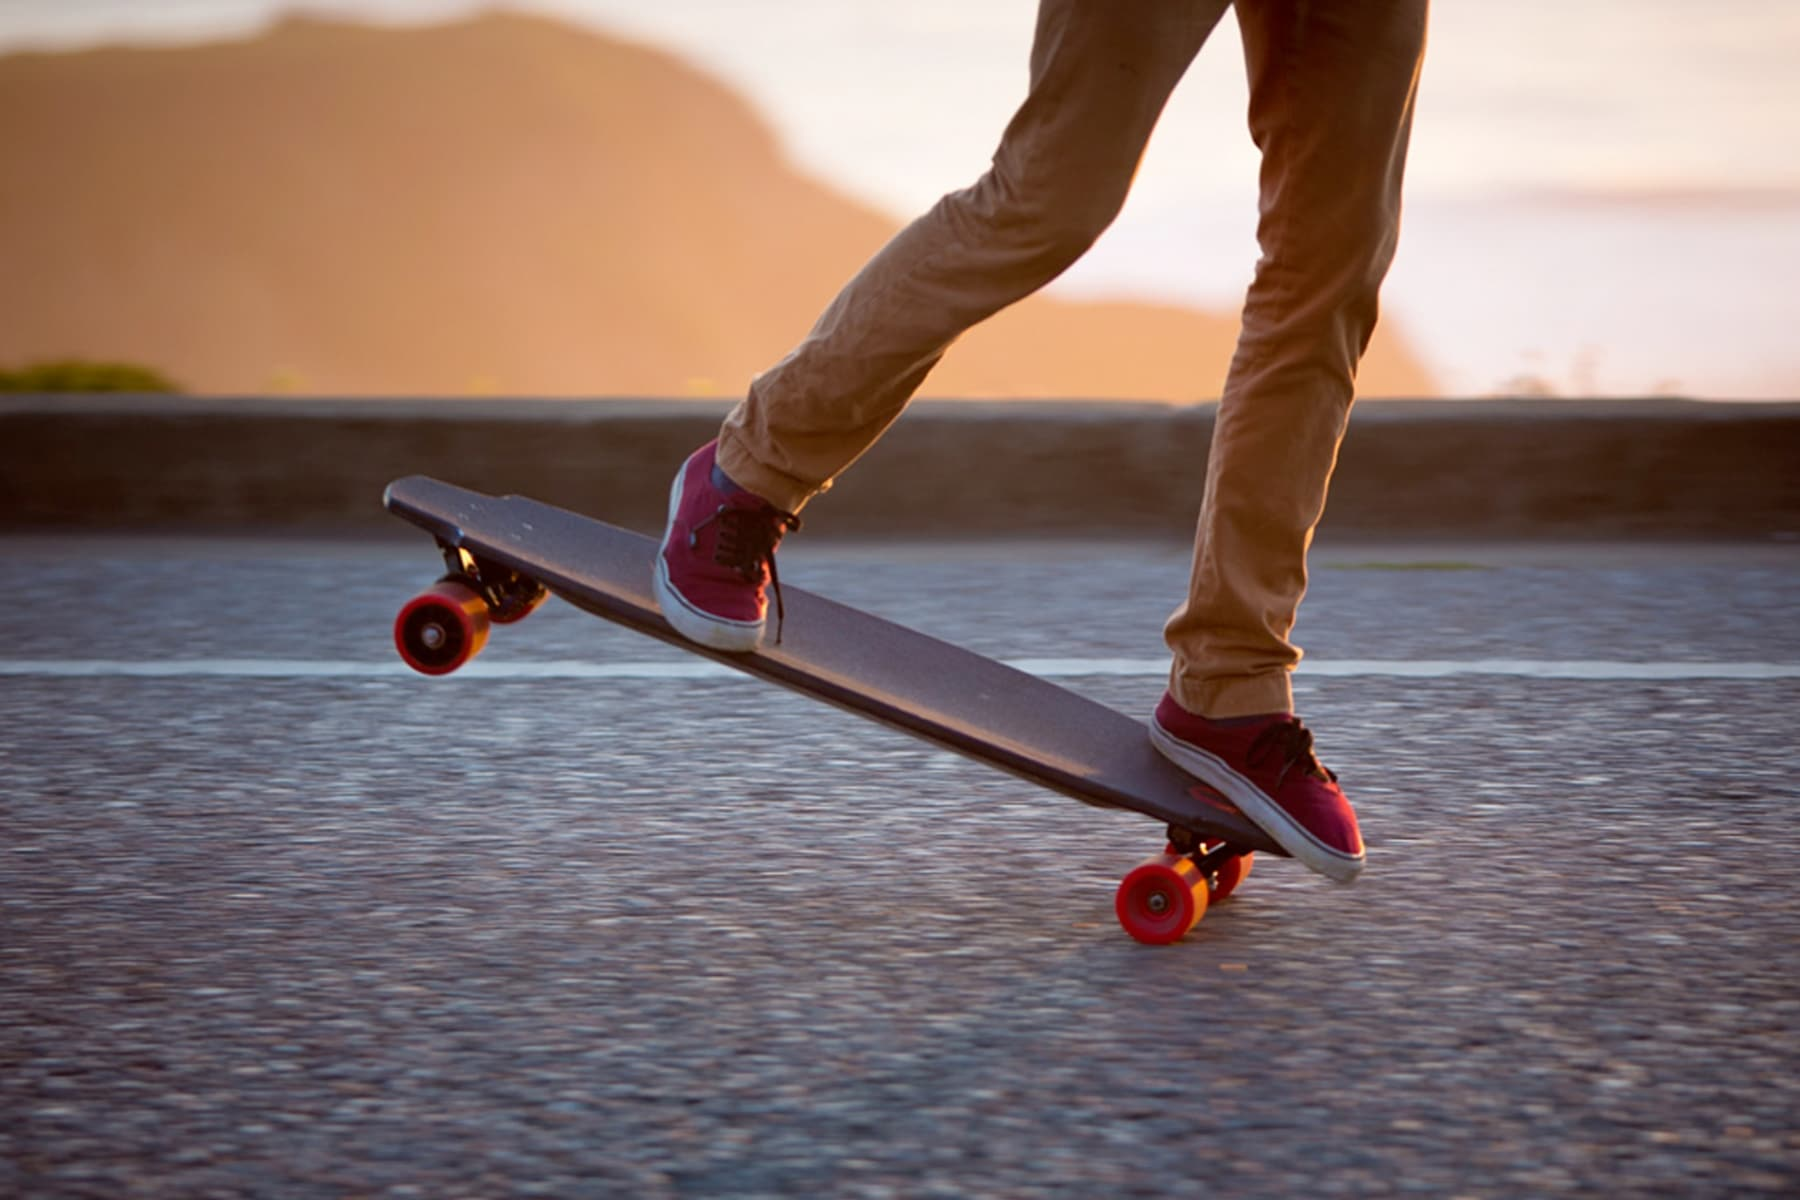 10 Most Popular Electric Skateboards for Teens [Buying Guide] 3